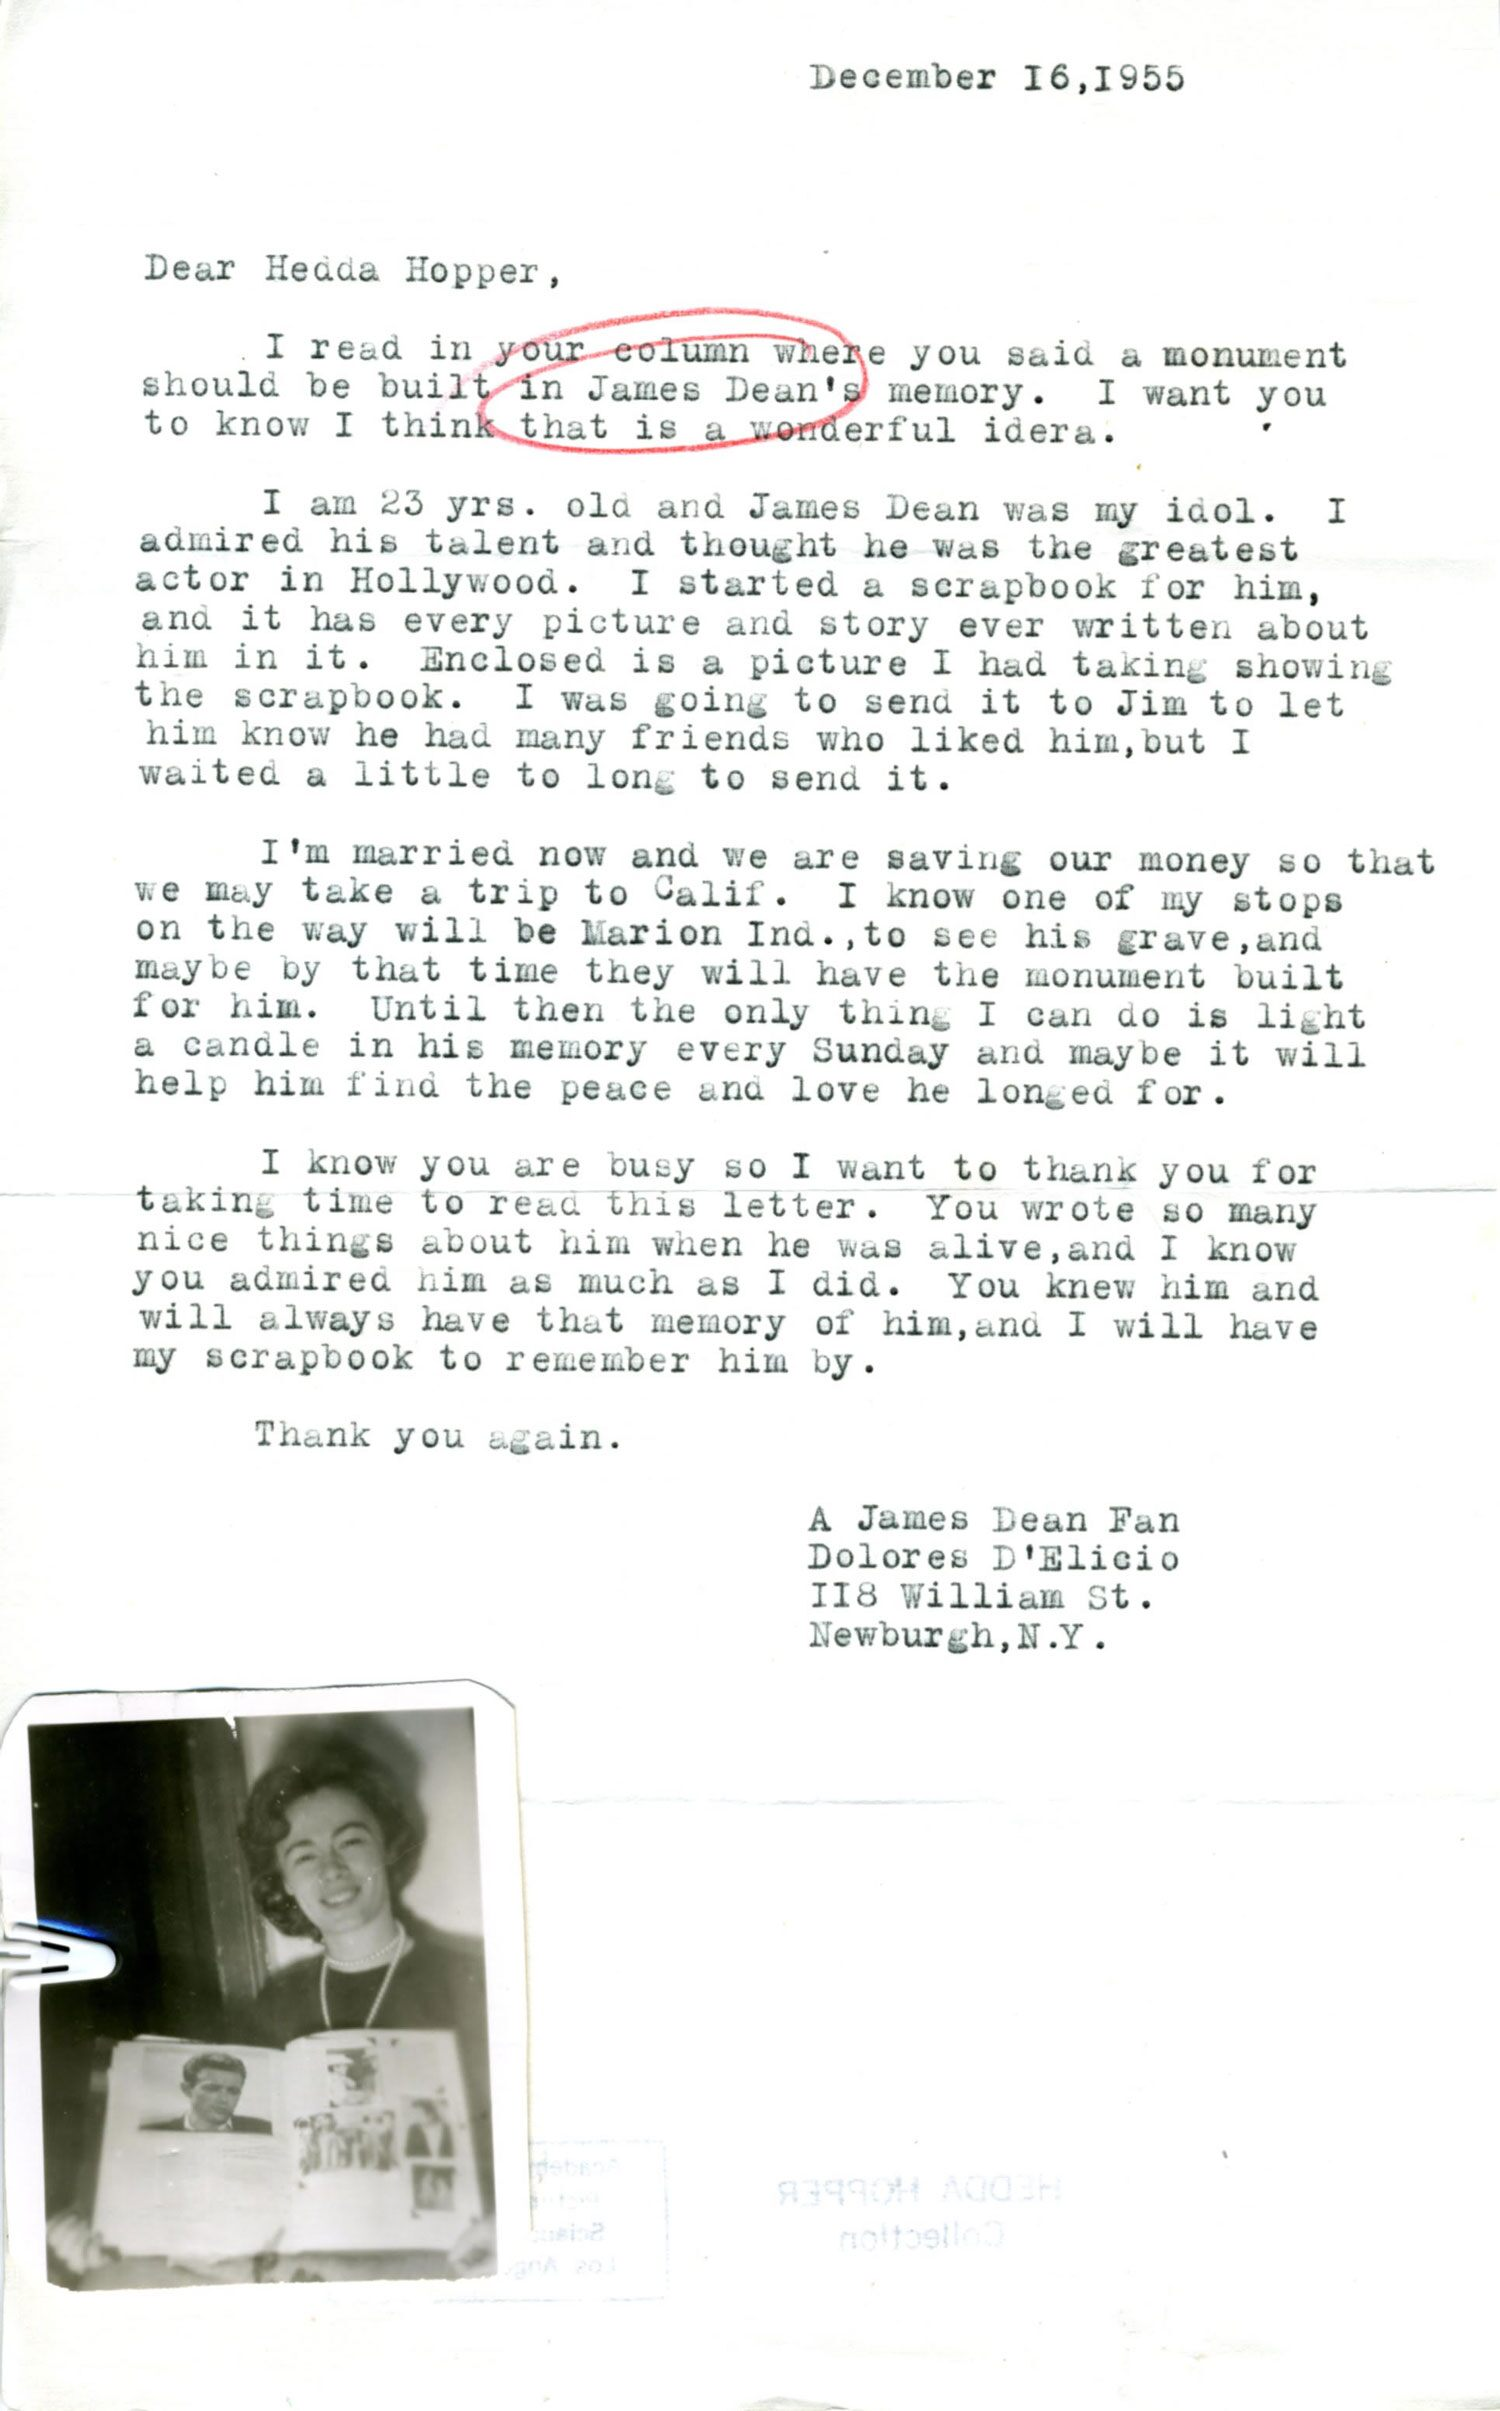 This fan letter proposed a monument after his death